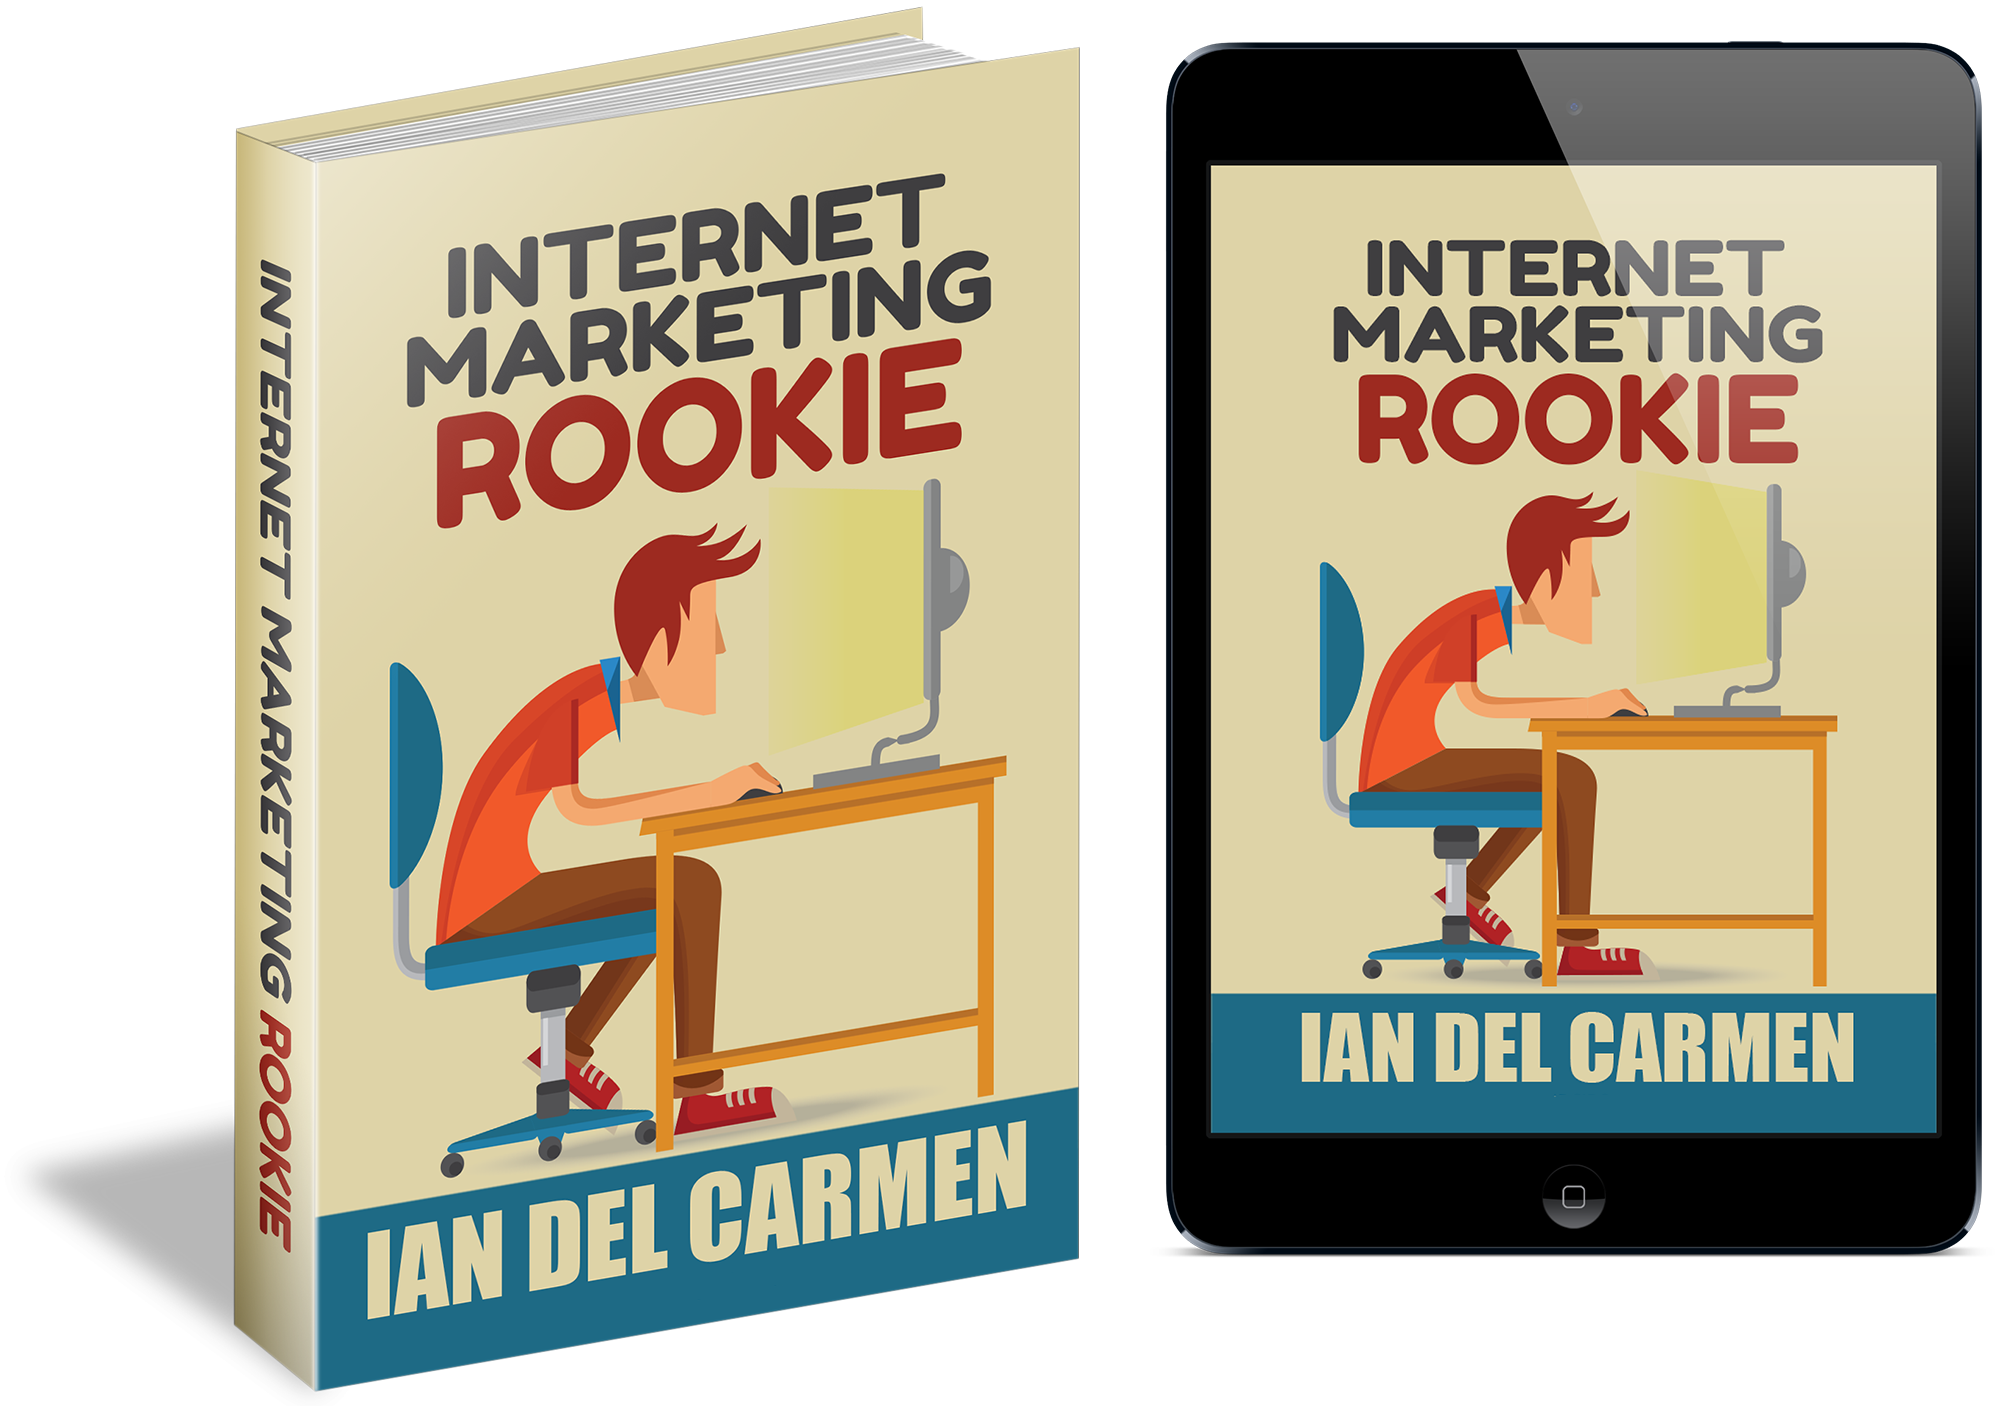 Internet Marketing Rookie